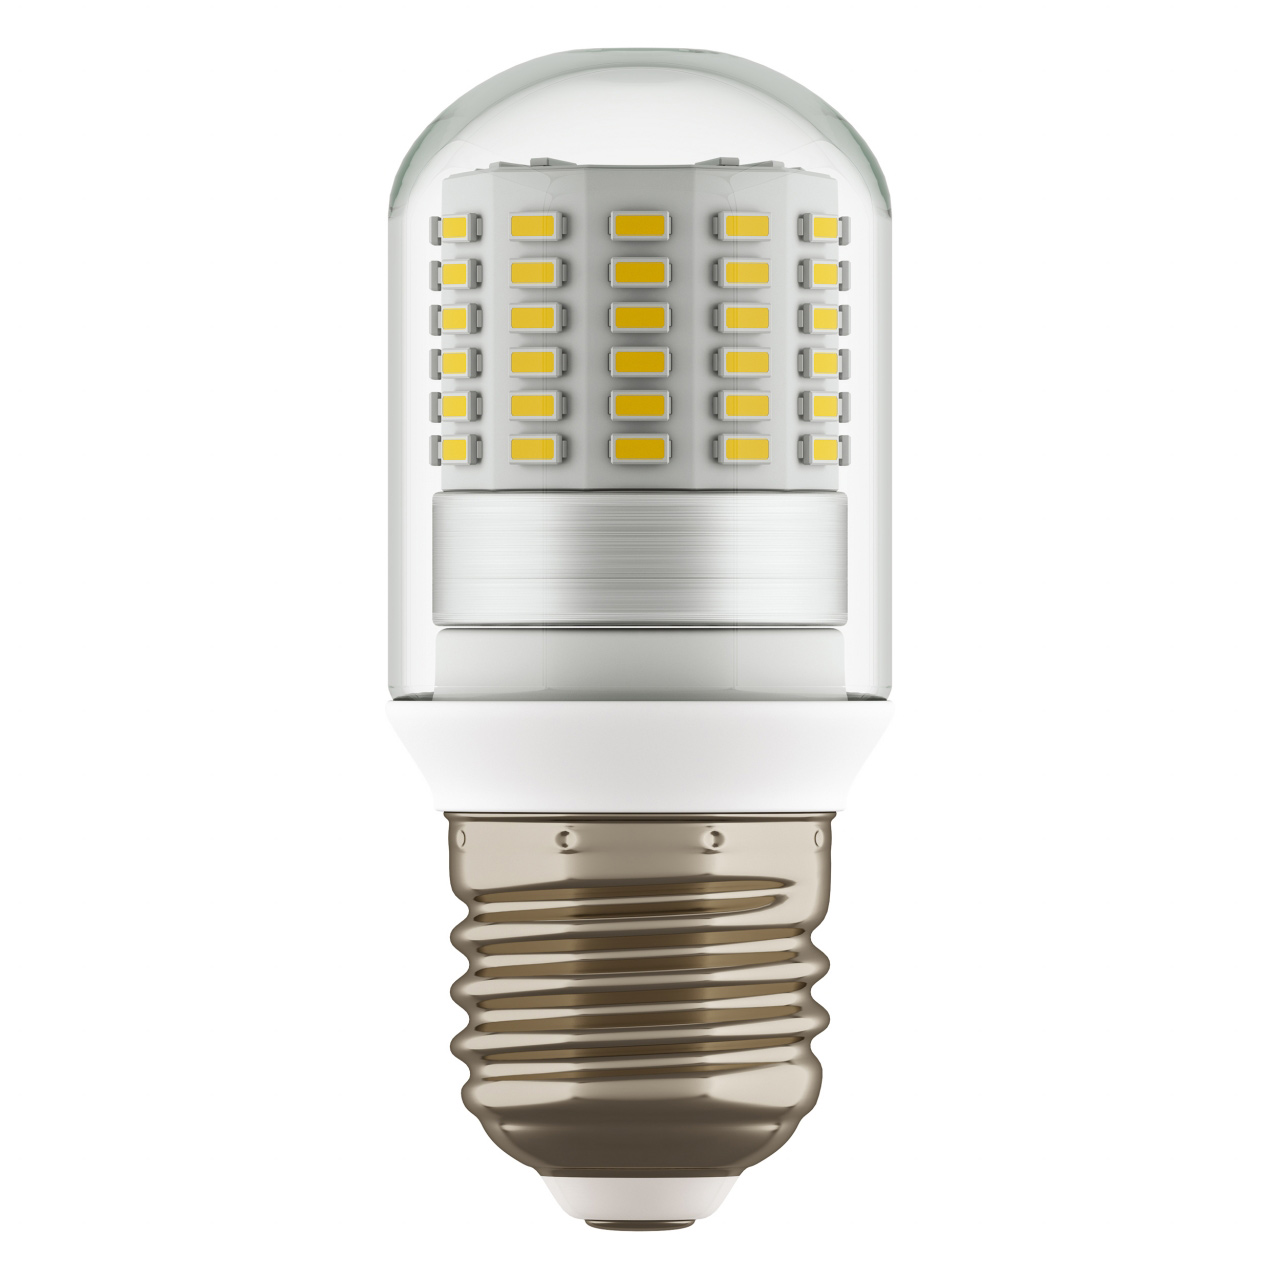 Лампа LED 220V T35 E27 9W=90W 850LM 360G CL 3000K 20000H Lightstar 930902